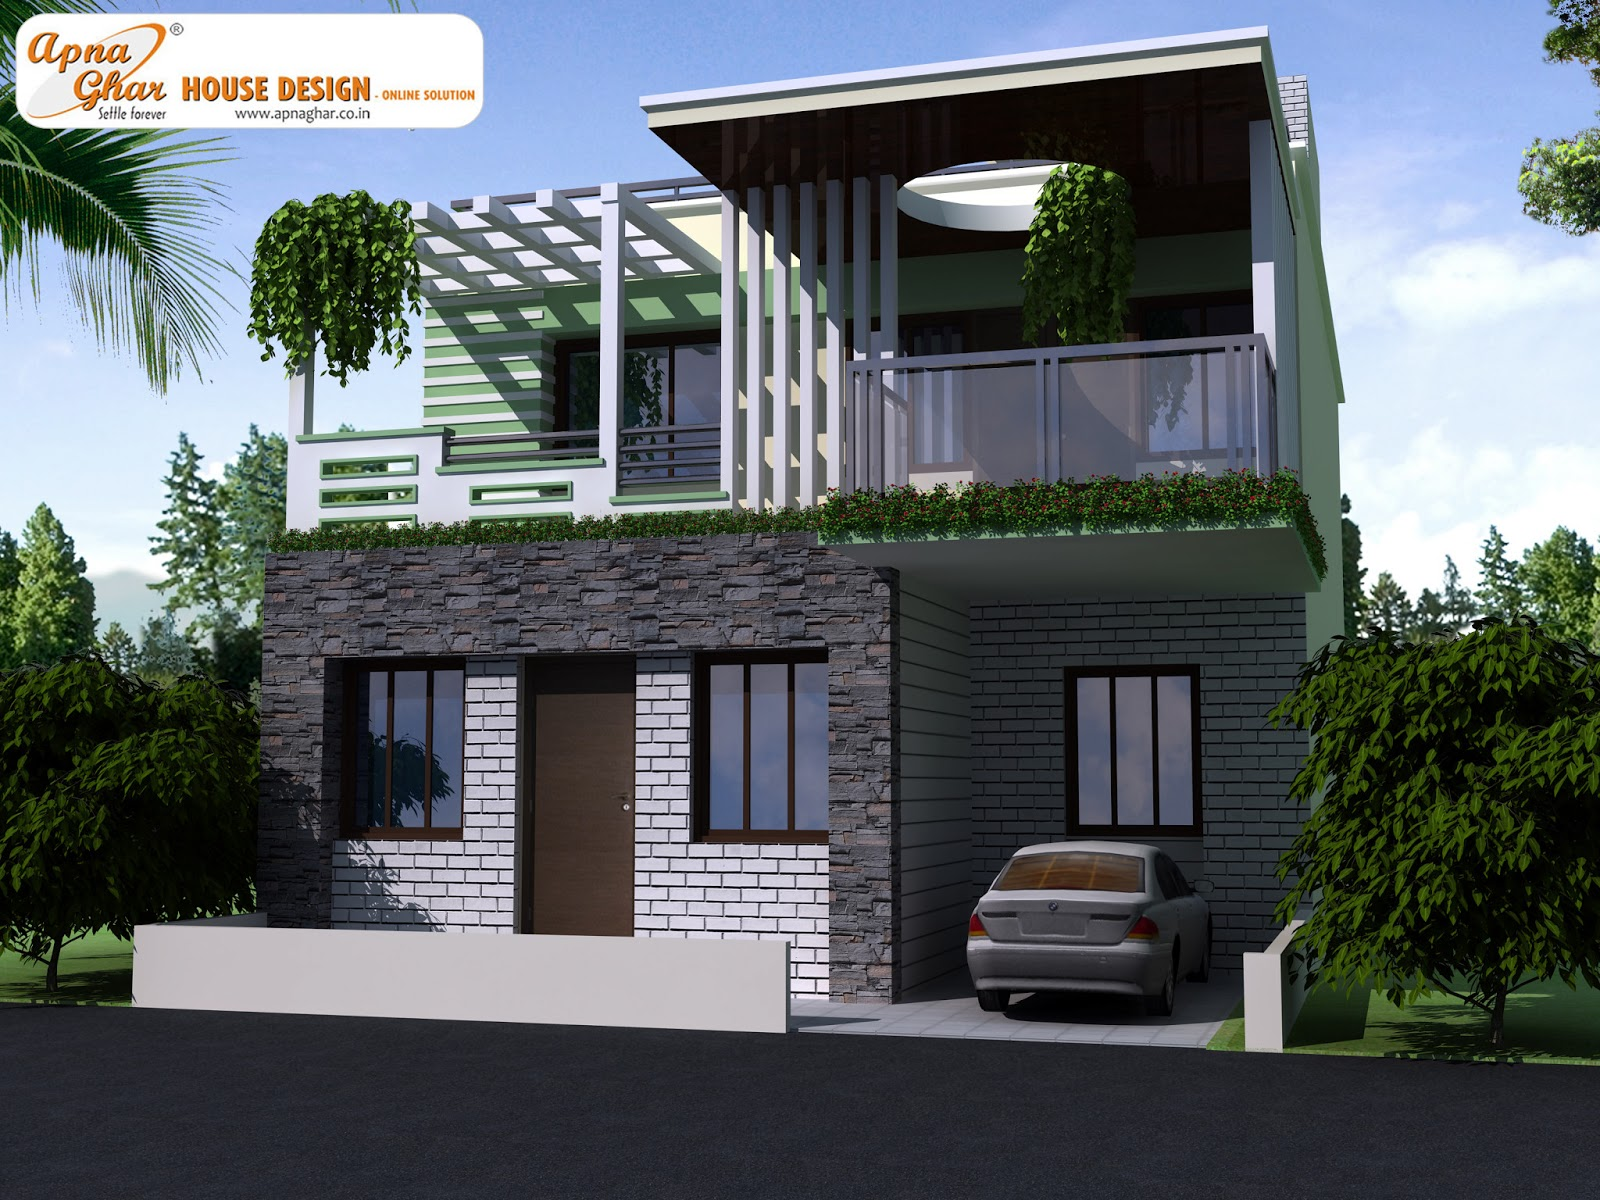 Apnaghar complete architectural solution page 41 for Front view of duplex house in india